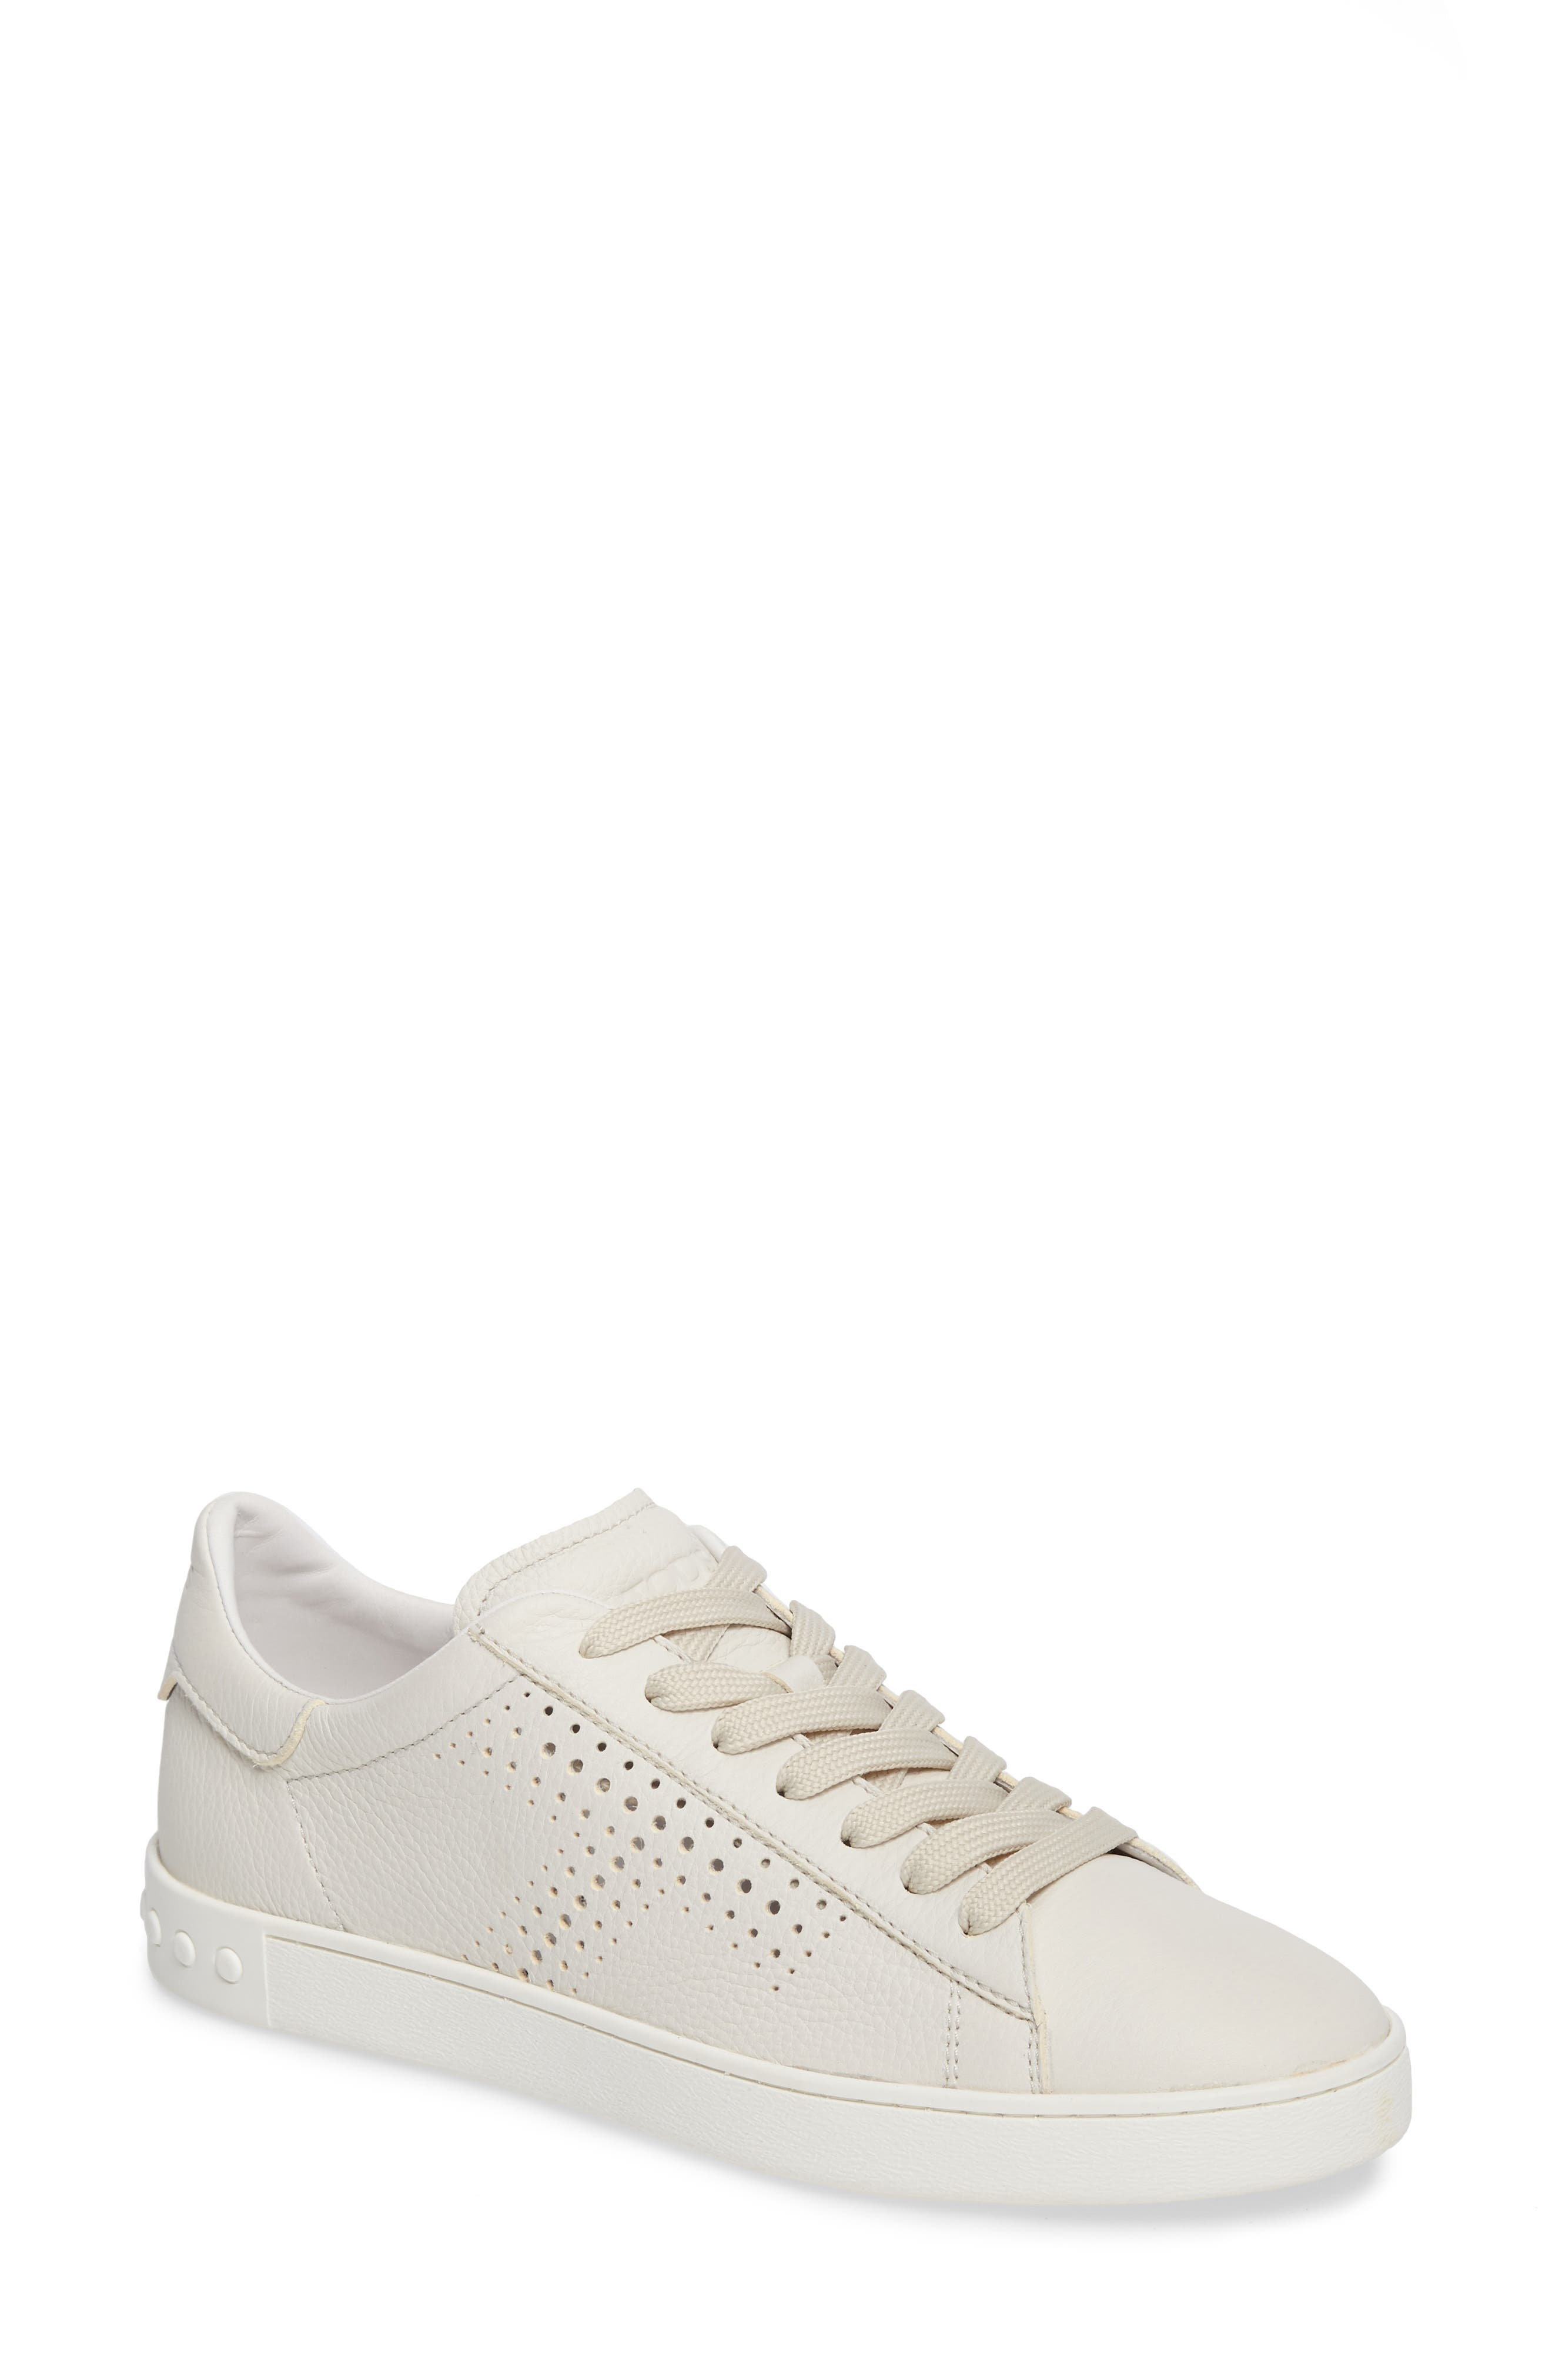 Tods Perforated T Sneaker,                             Main thumbnail 1, color,                             100